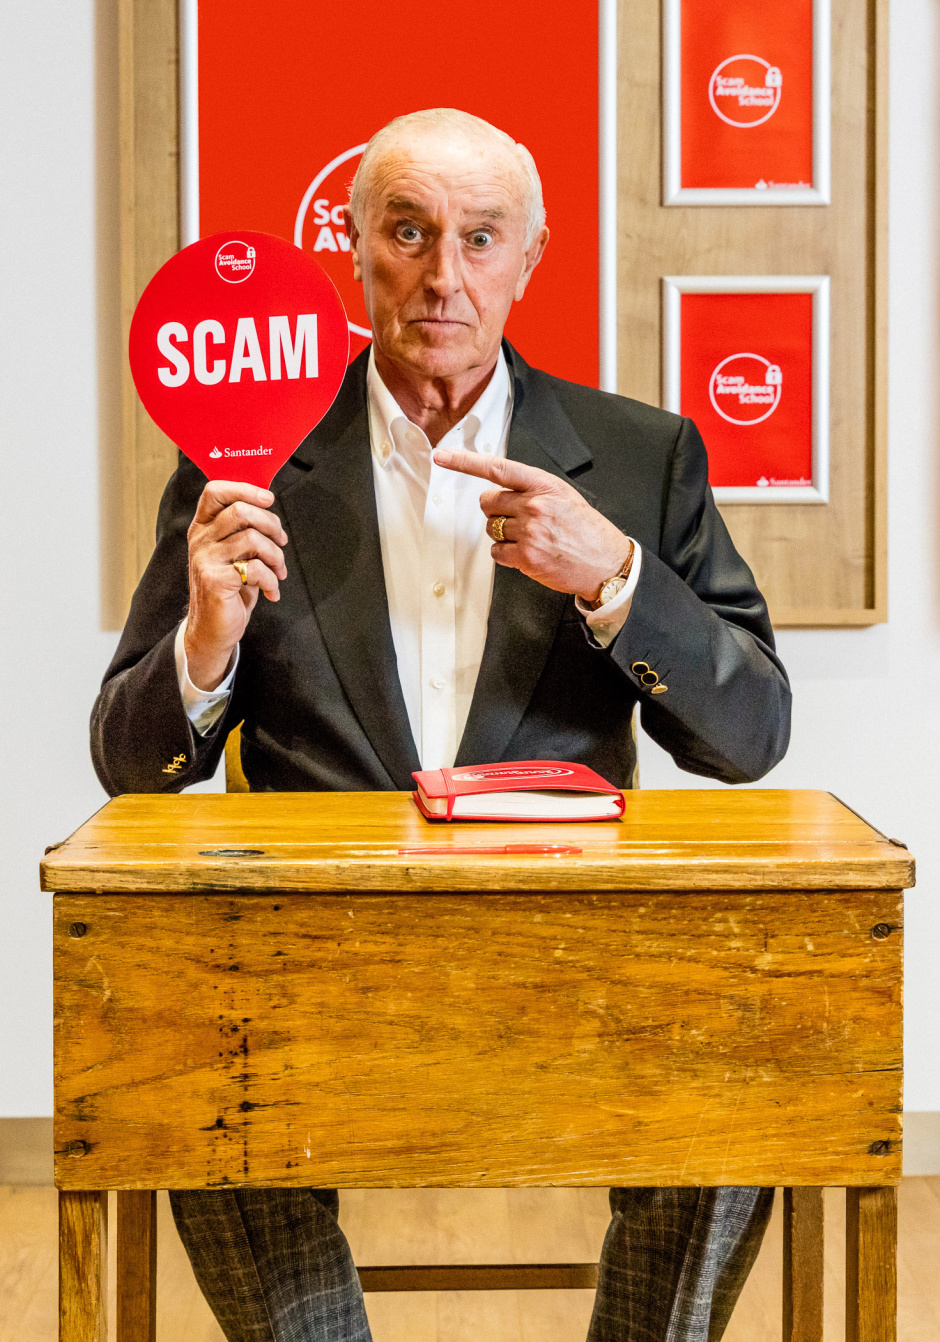 Len Goodman joins the SAS: Former Strictly Come Dancing judge Len Goodman has become the first graduate of the Scam Avoidance School - a new nationwide initiative by Santander for the over 60s offering free scam avoidance training. The SAS will run in all 806 Santander branches from 19 - 23 March. This picture: A 10 for Len as he correctly spots a scam during the Scam Avoidance School. For further information please contact Cow PR on 020 7234 9150  or santander@cowpr.com PR Handout - free for editorial usage.  Copyright: © Santander